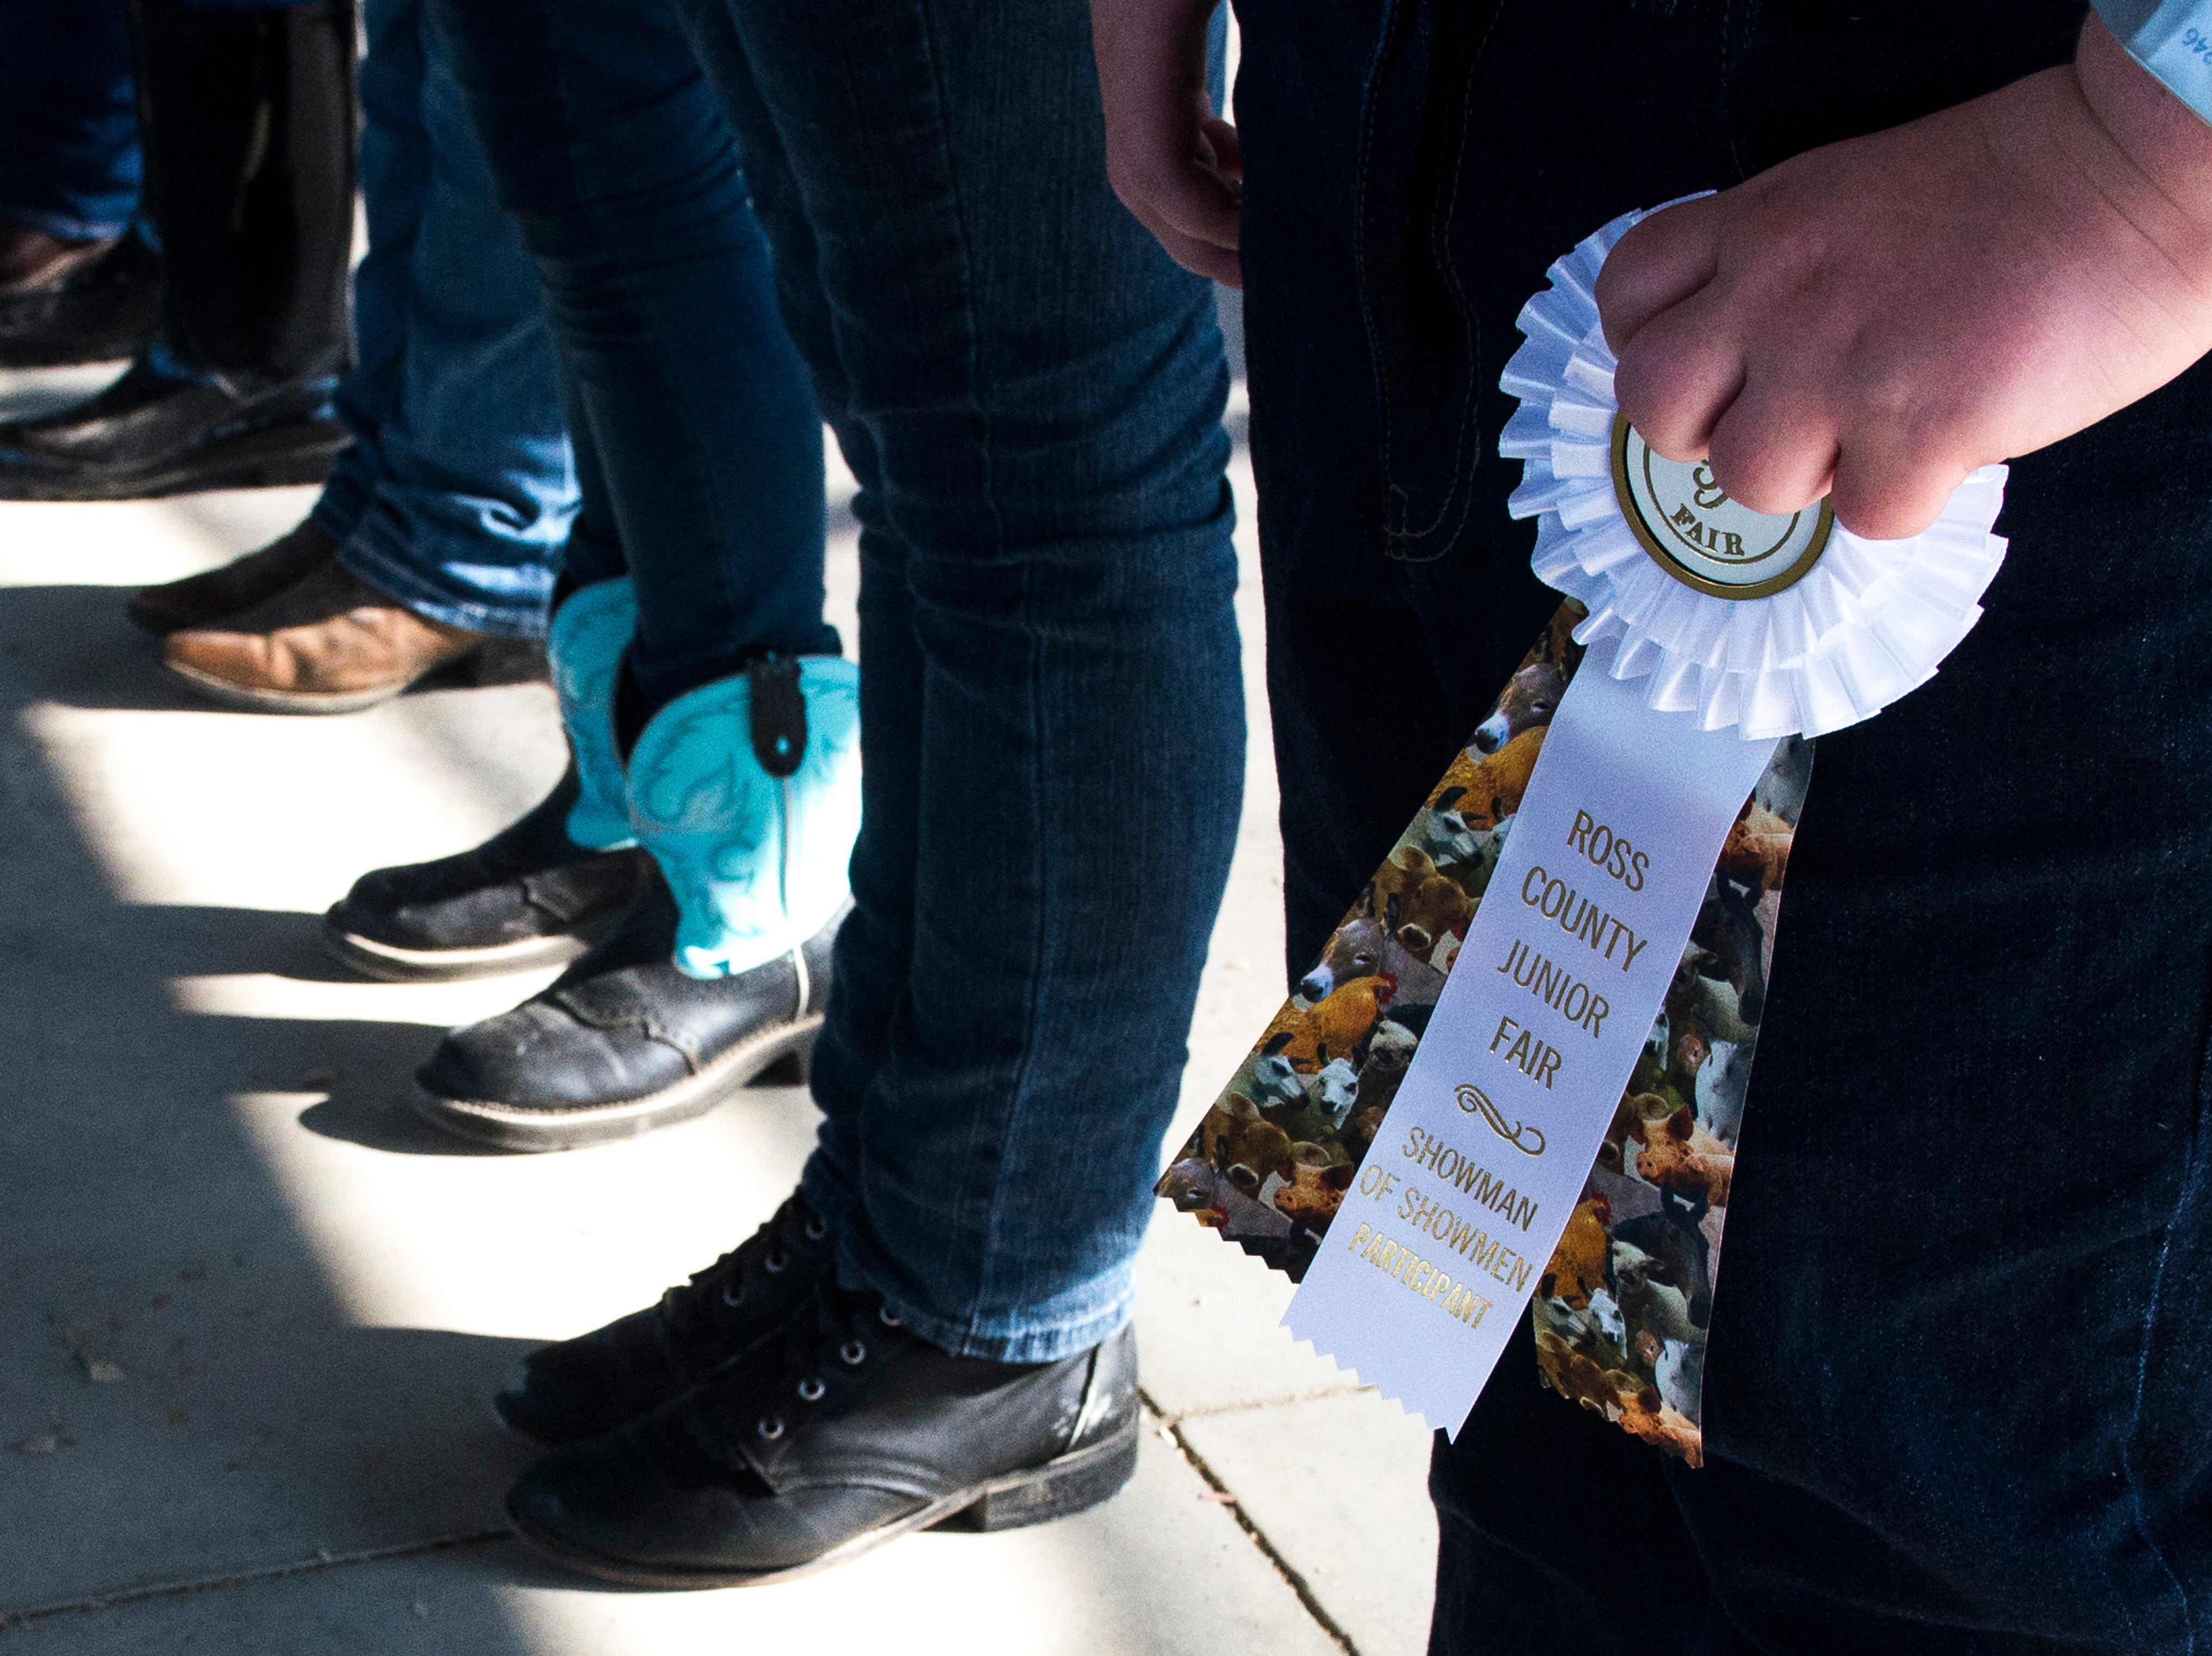 Contestants line up for the award ceremony during the Small Animal Showman of Showmen Contest at the Ross County Fair on August 9, 2018 in Chillicothe, Ohio.